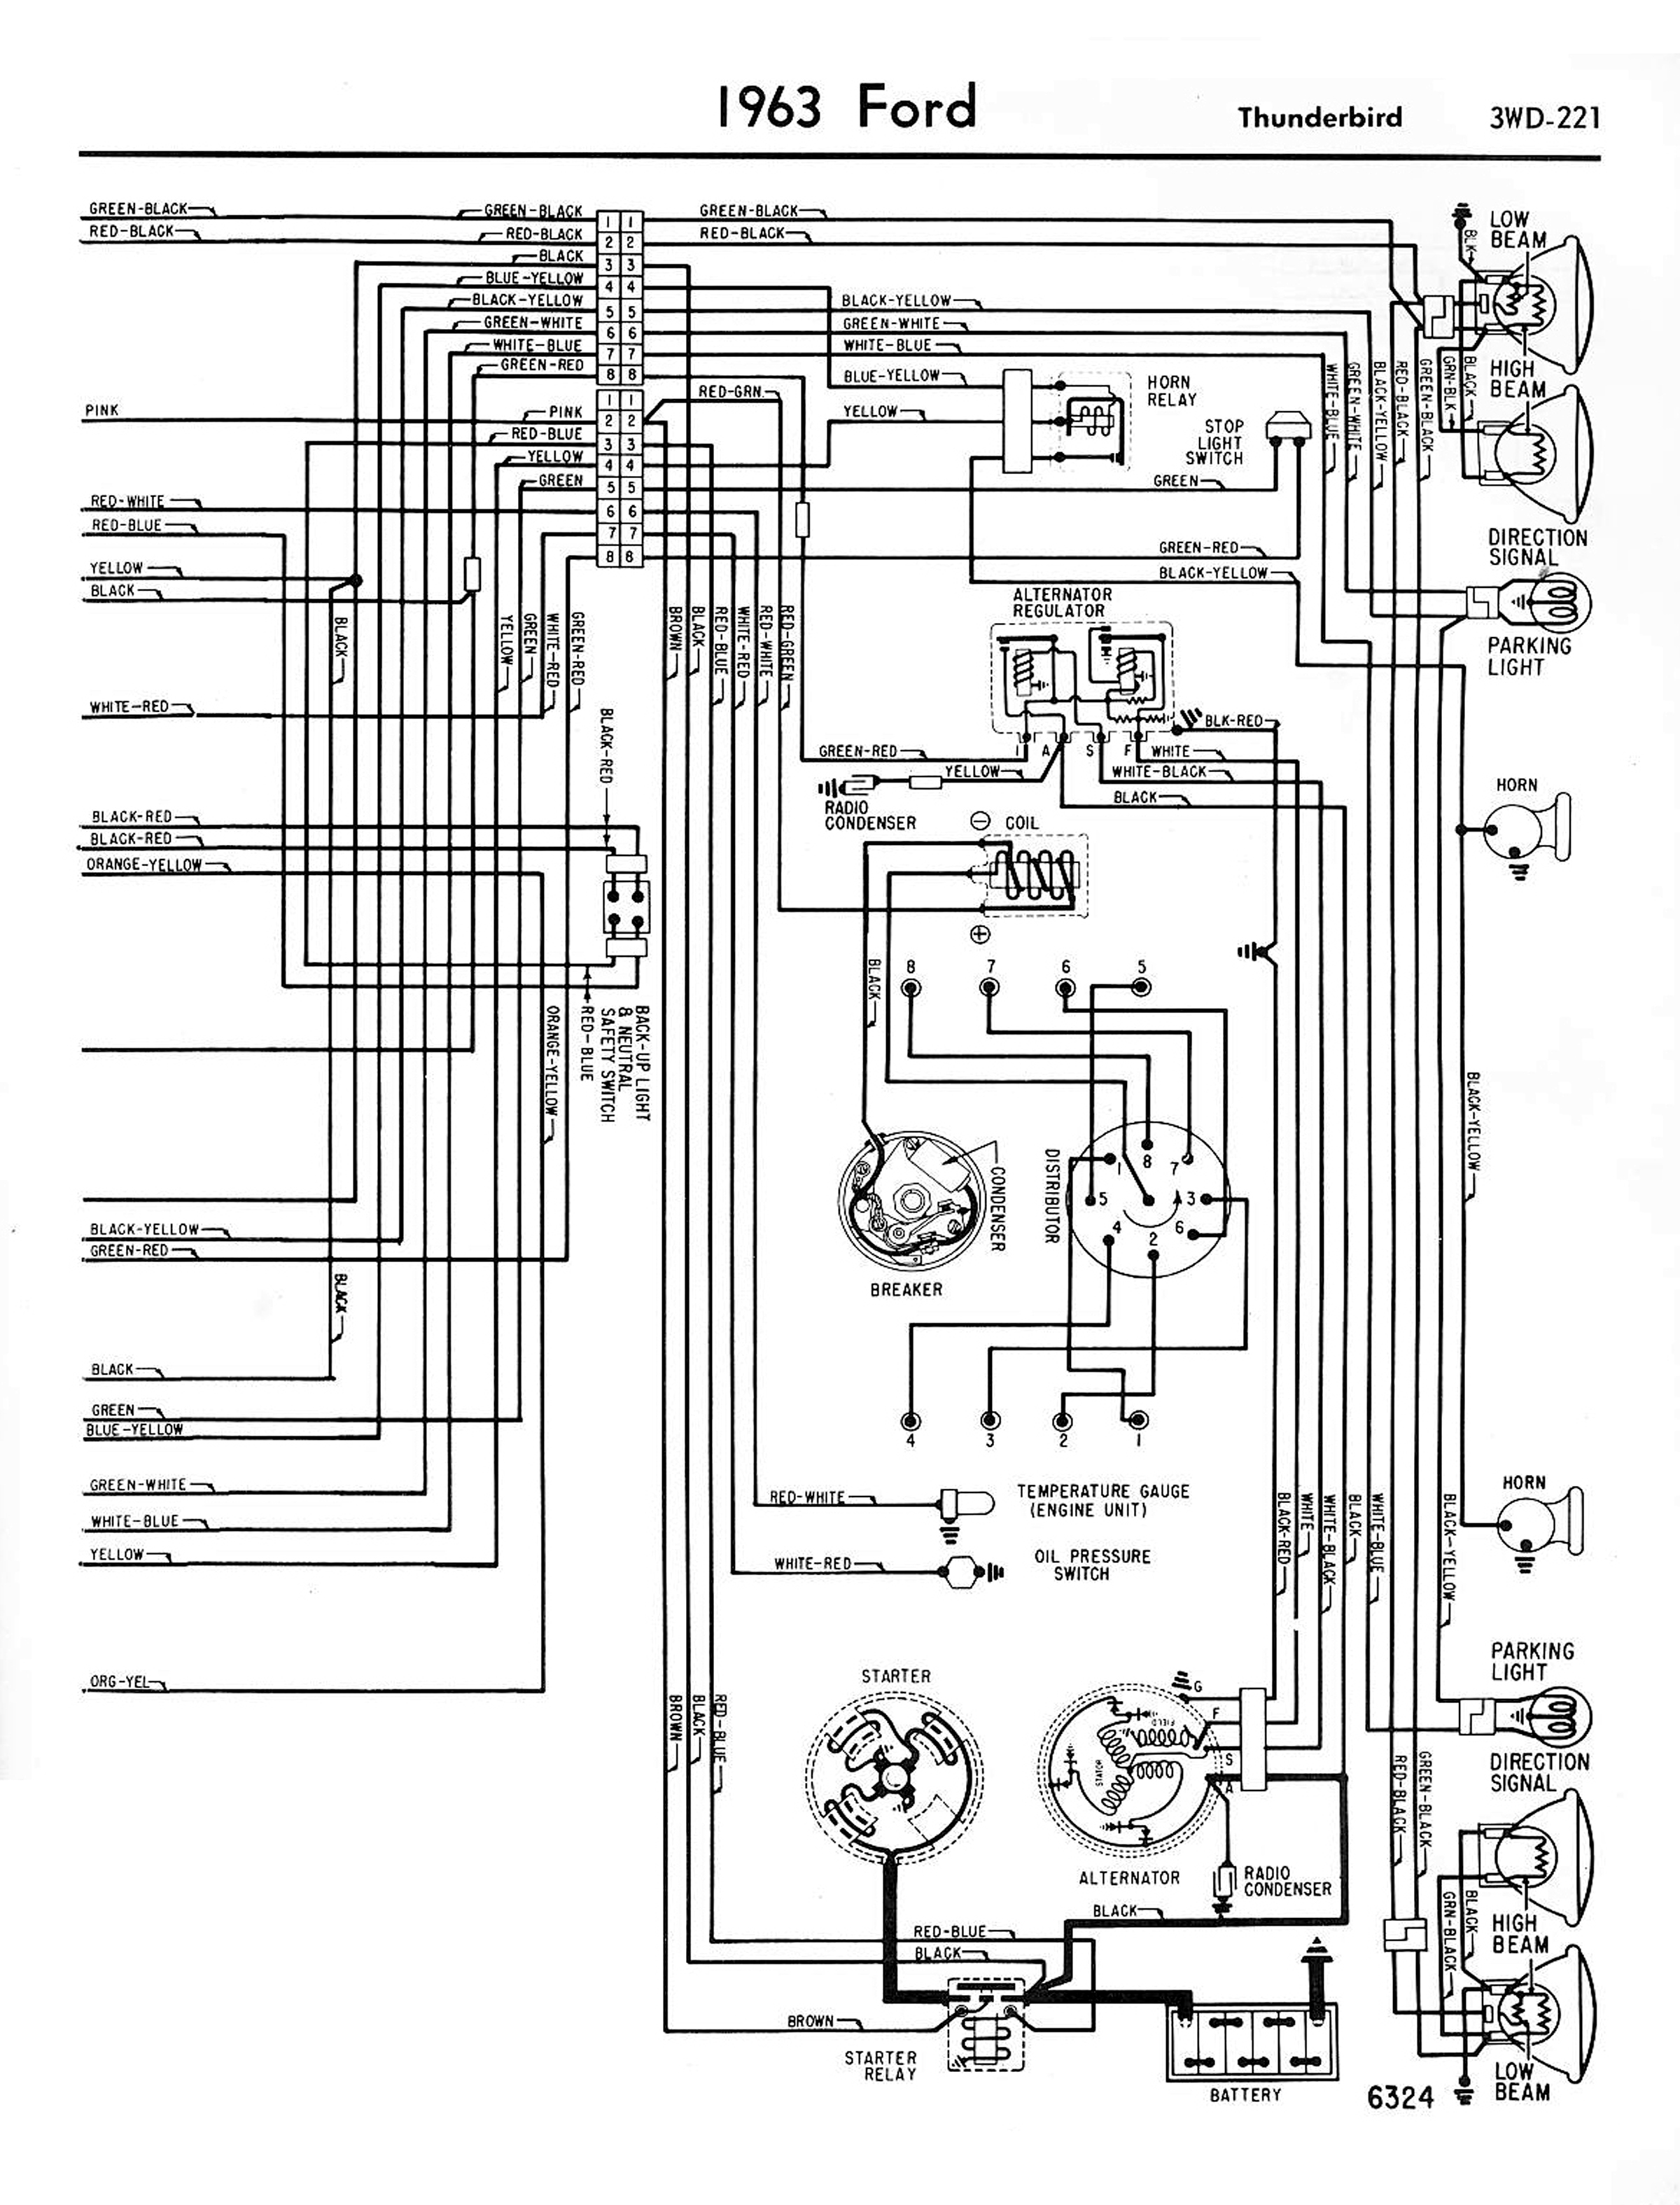 Basic 1 Wire Alternator Wiring Diagram